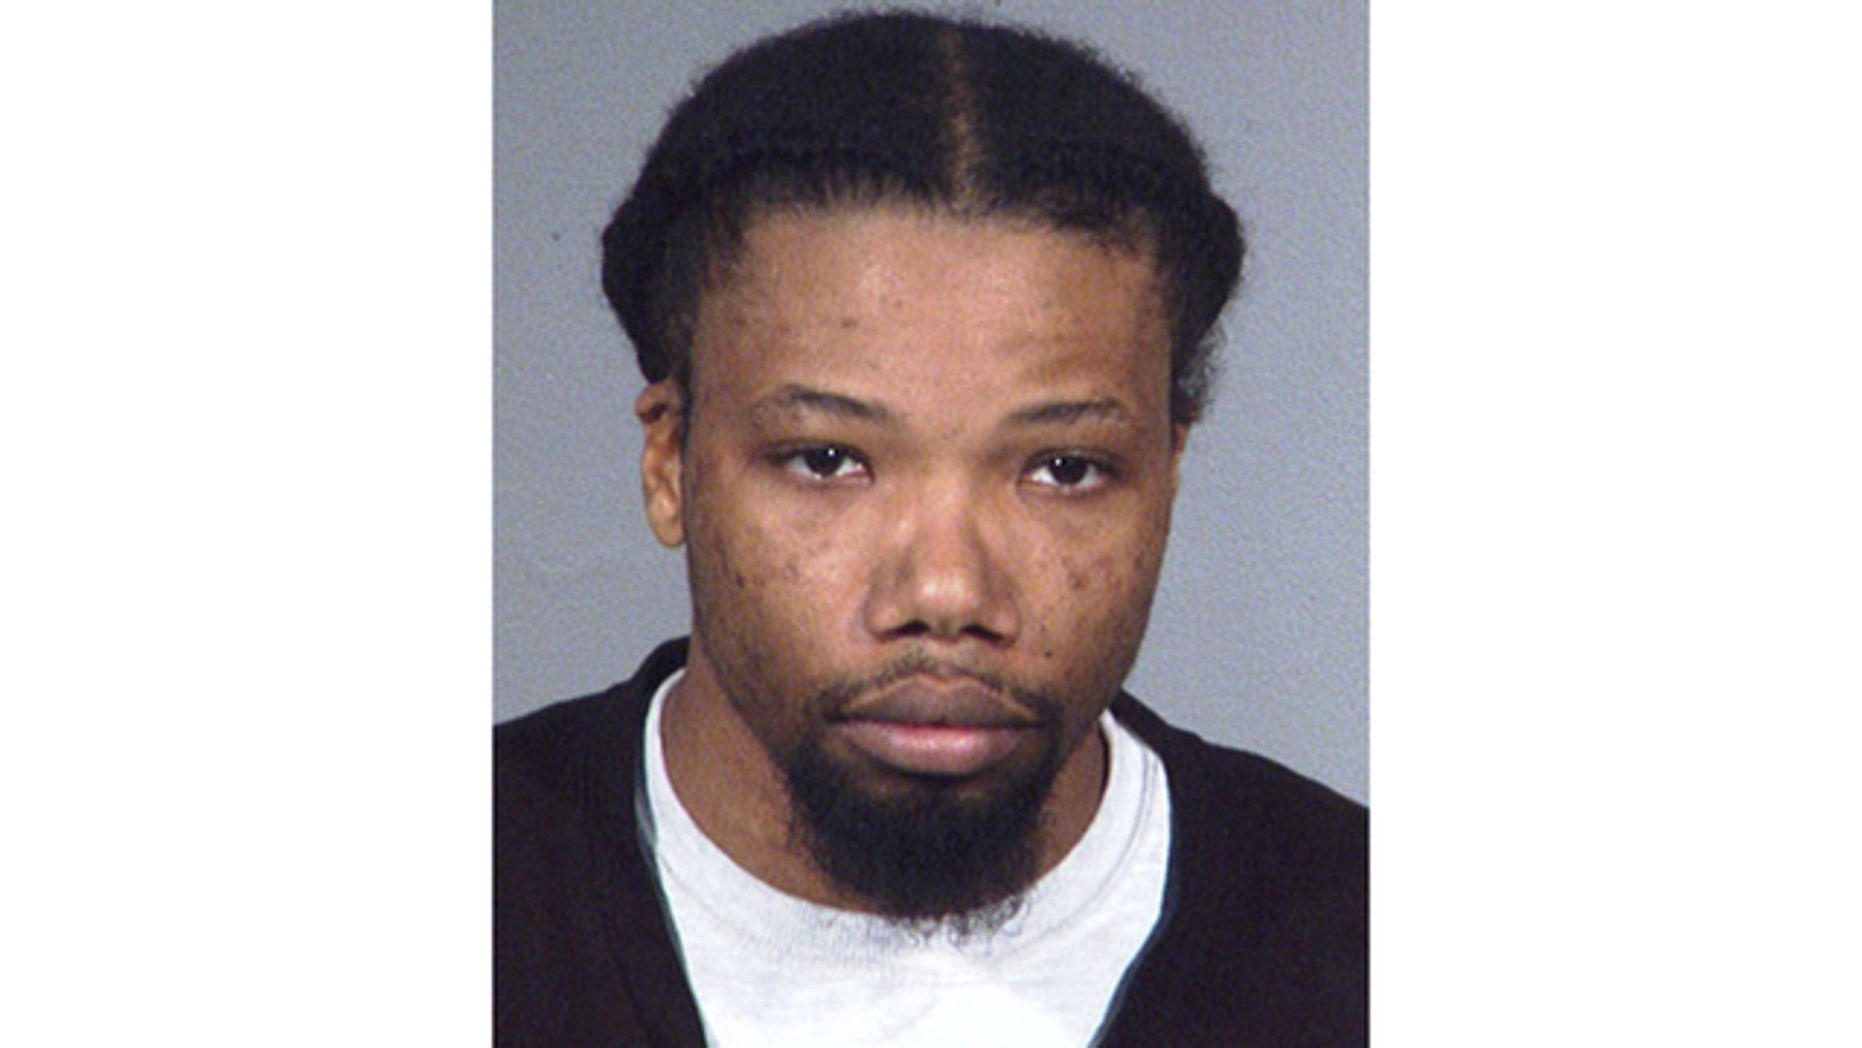 Richard Springer was arrested in connection with an attack on a 69-year-old New York grandmother.